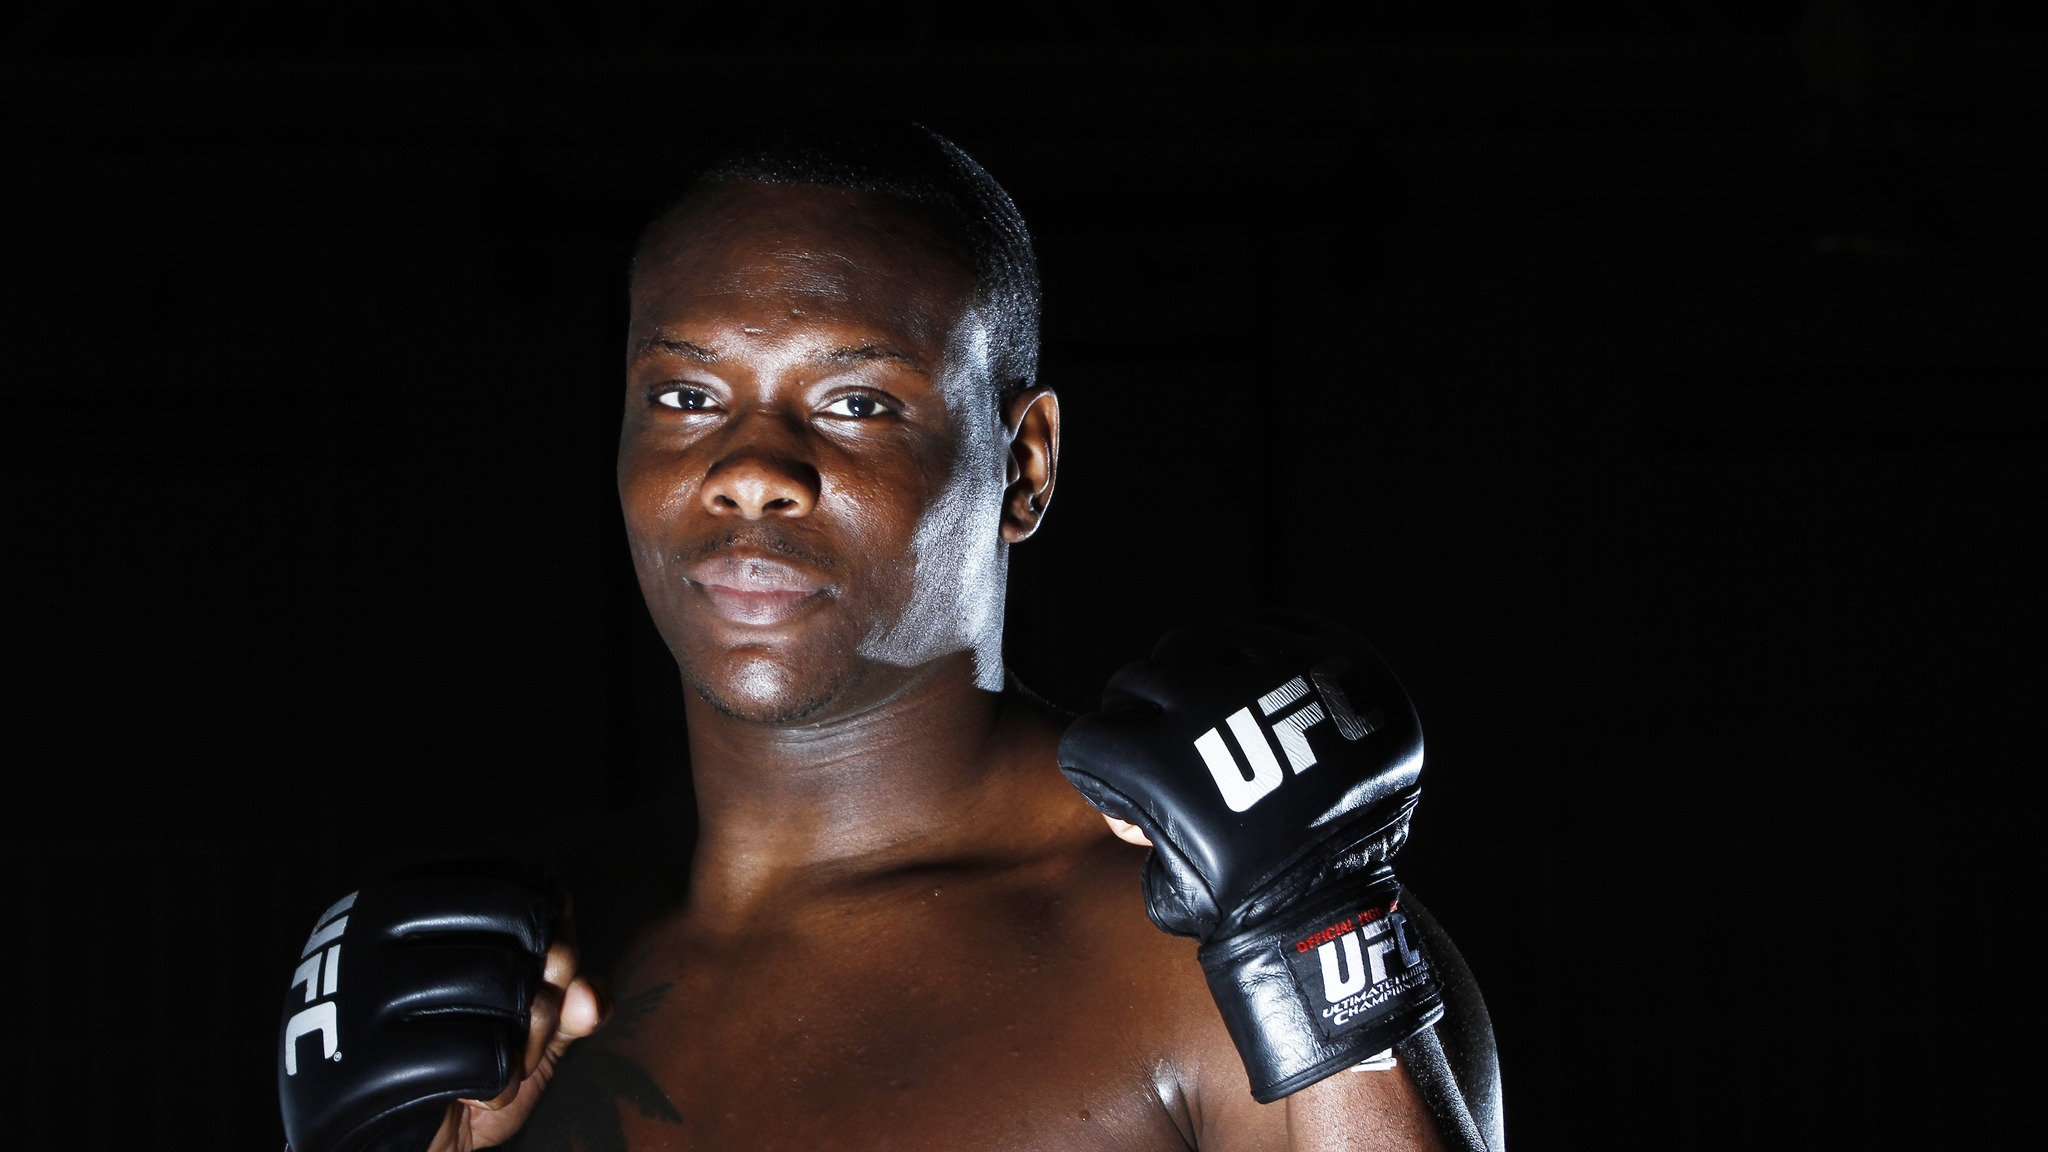 Download wallpaper 2048x1152 ovince saint preux ultimate fighting 2048x1152